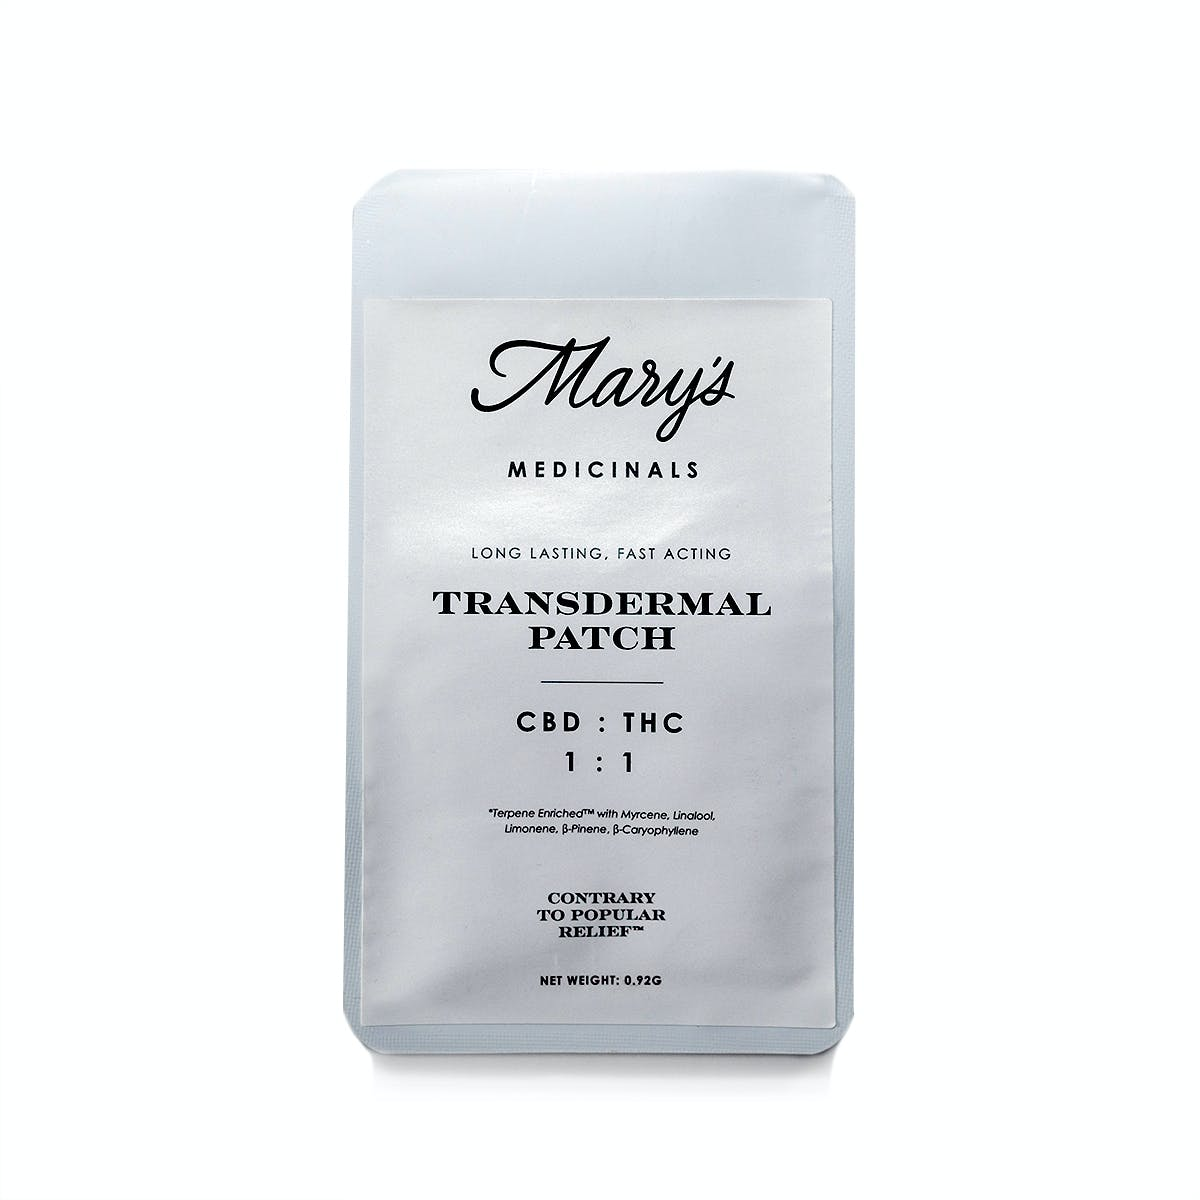 Transdermal Patch 1:1 CBD/THC